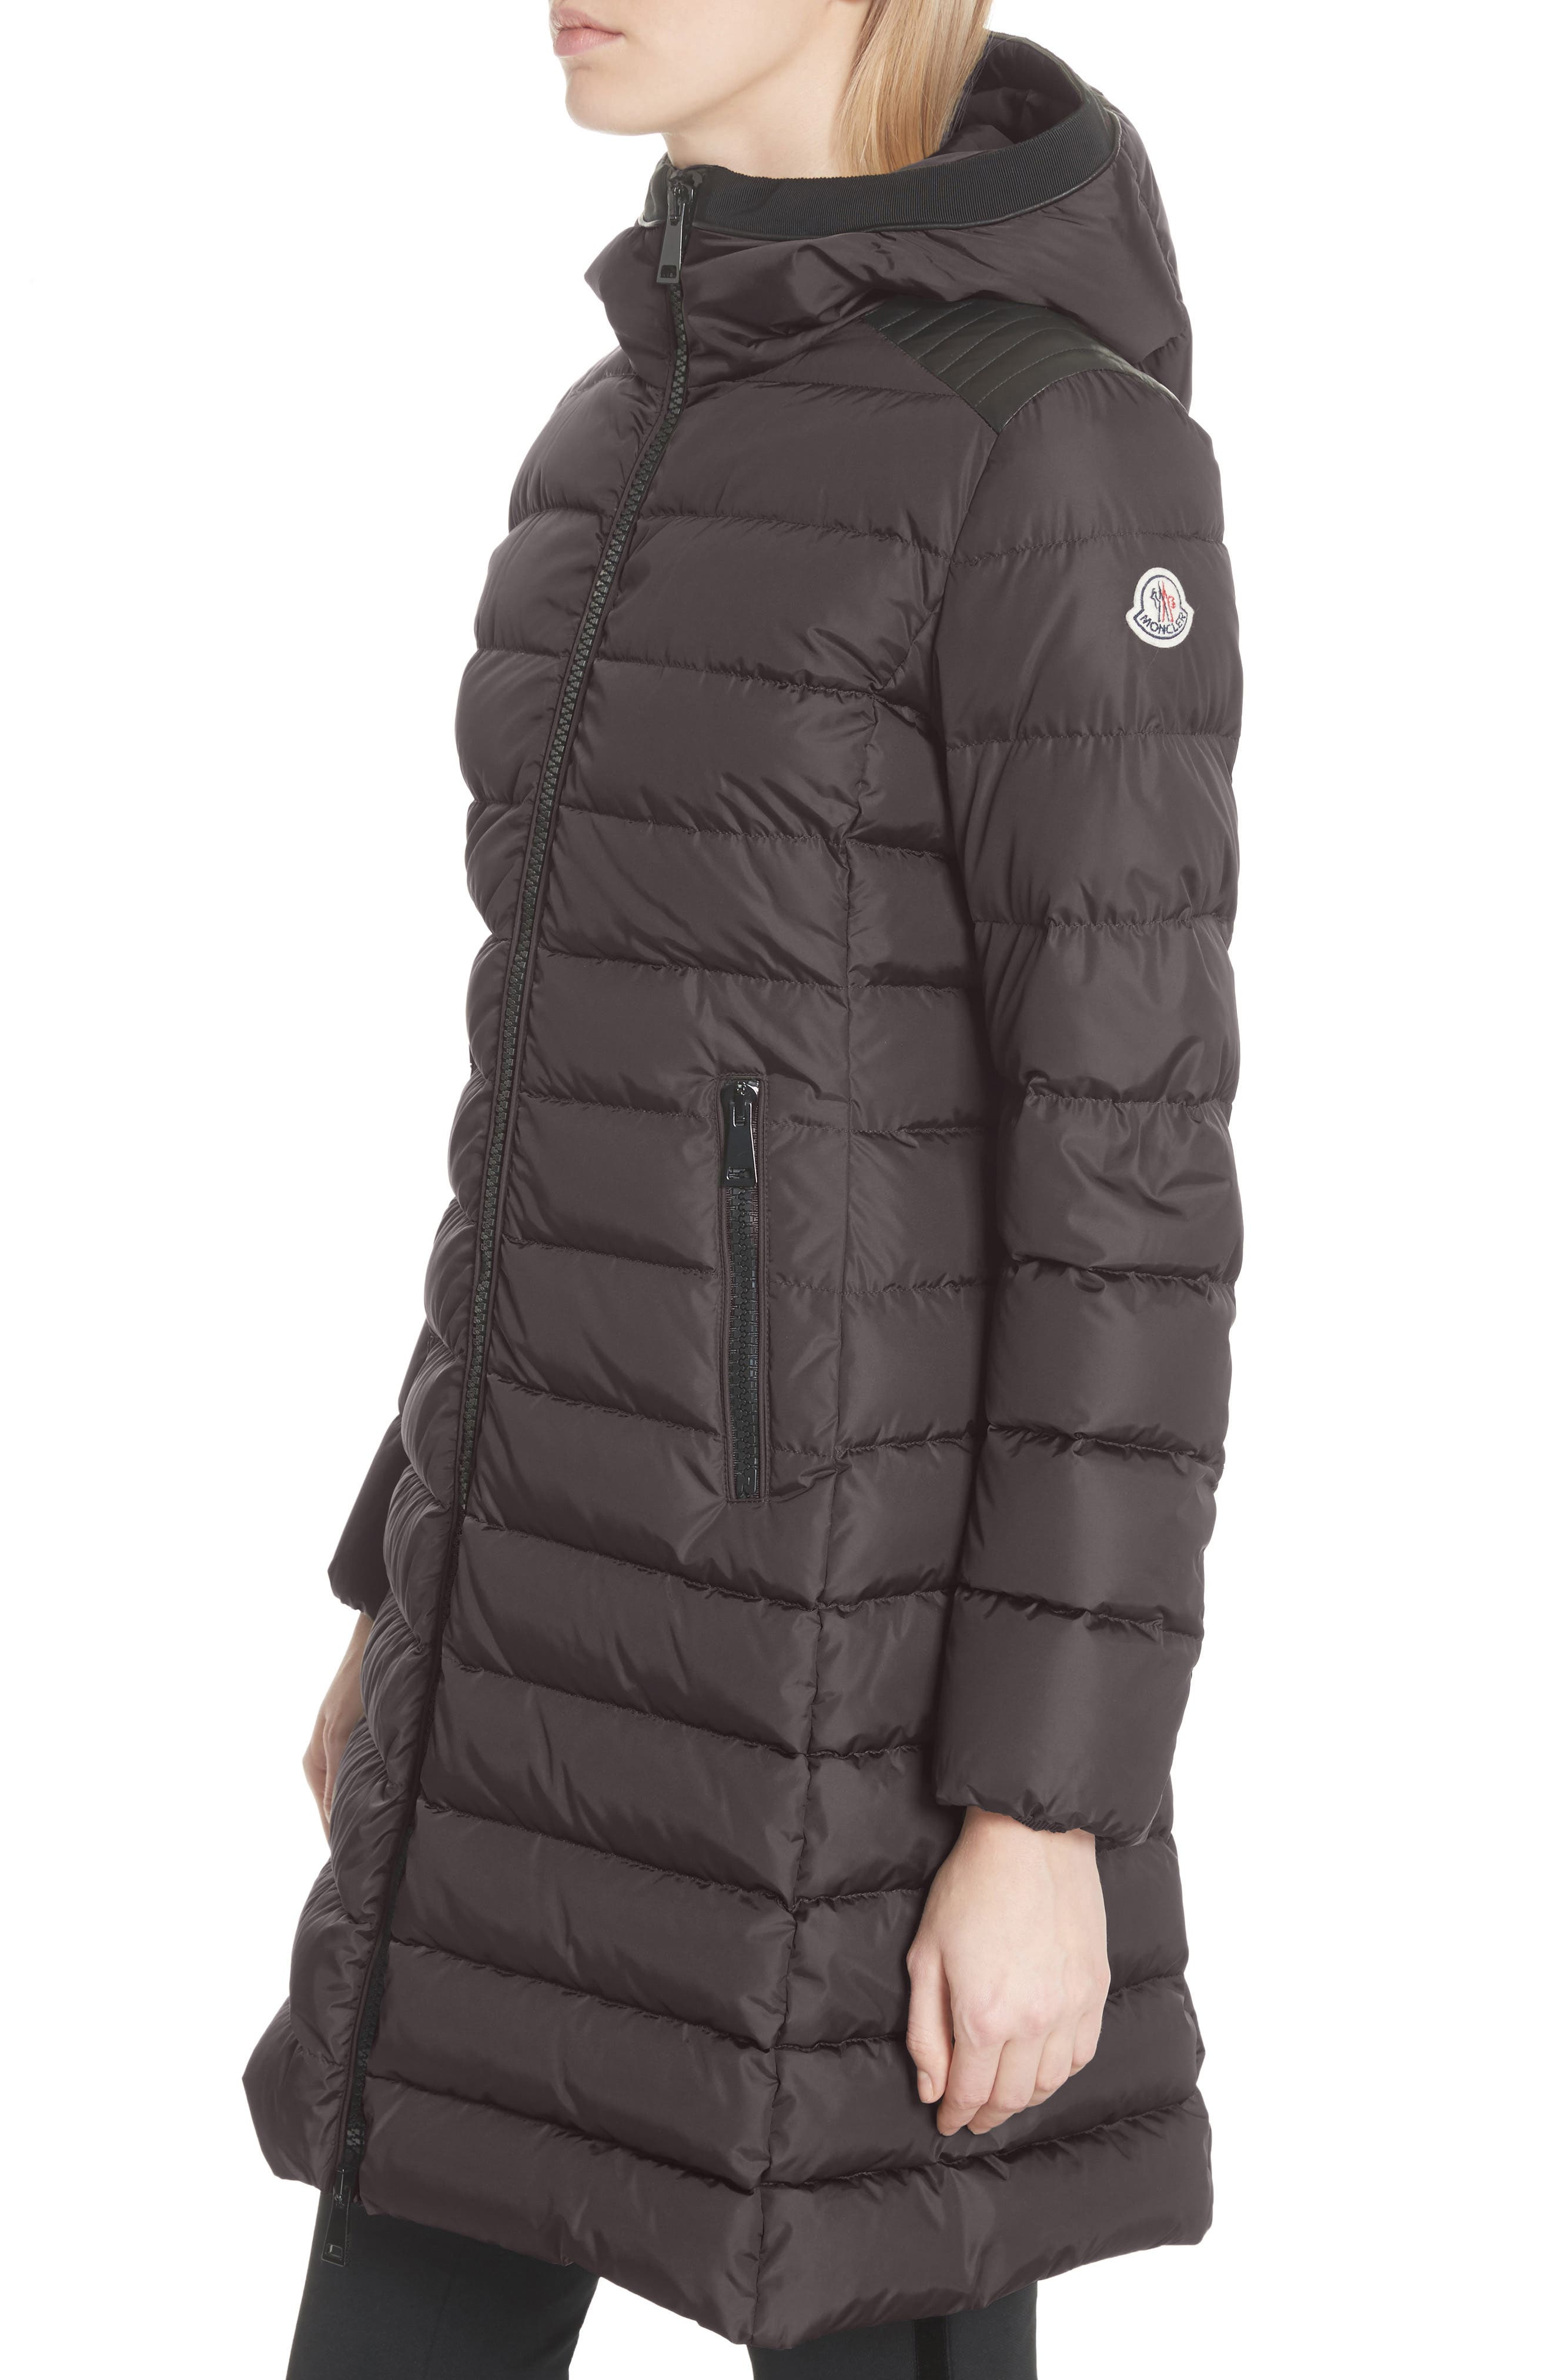 Taleve Hooded Quilted Down Coat,                             Alternate thumbnail 4, color,                             GREY